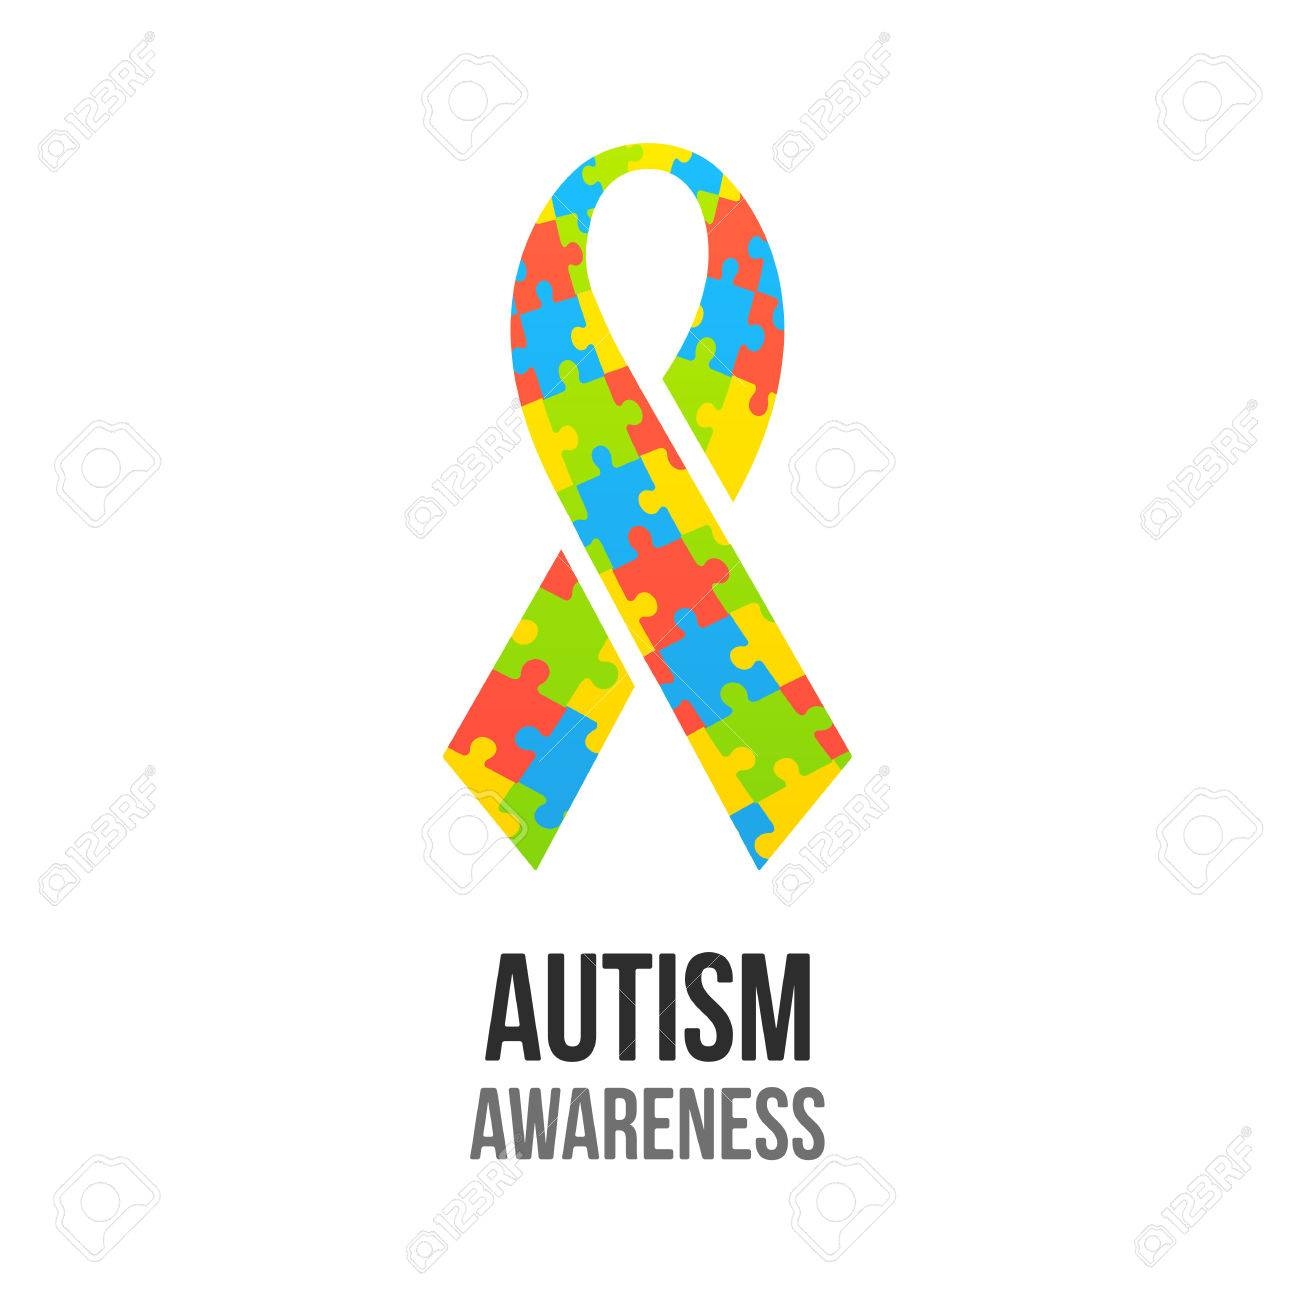 Autism awareness ribbon with jigsaw puzzle pattern colorful autism awareness ribbon with jigsaw puzzle pattern colorful vector illustration stock vector 54096271 biocorpaavc